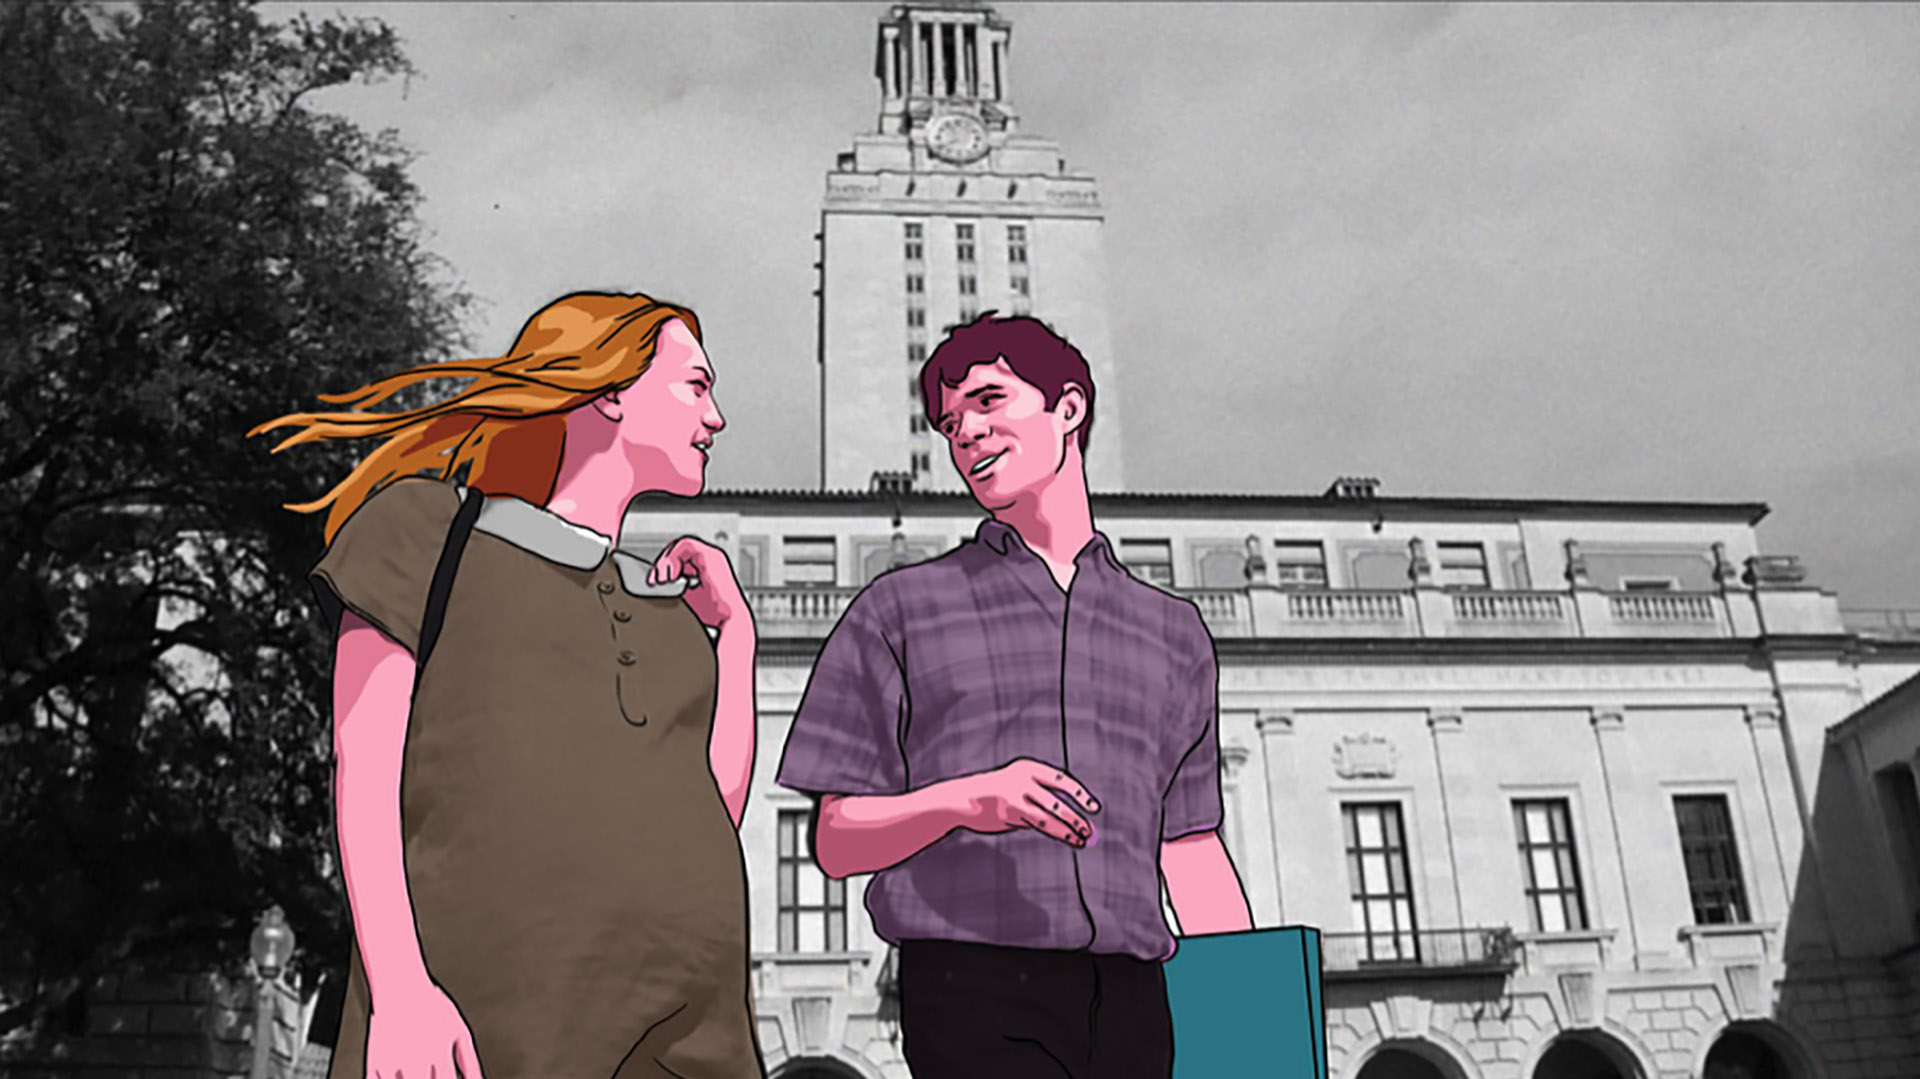 Imaginative documentary 'Tower' revisits 1966 mass shooting at UT